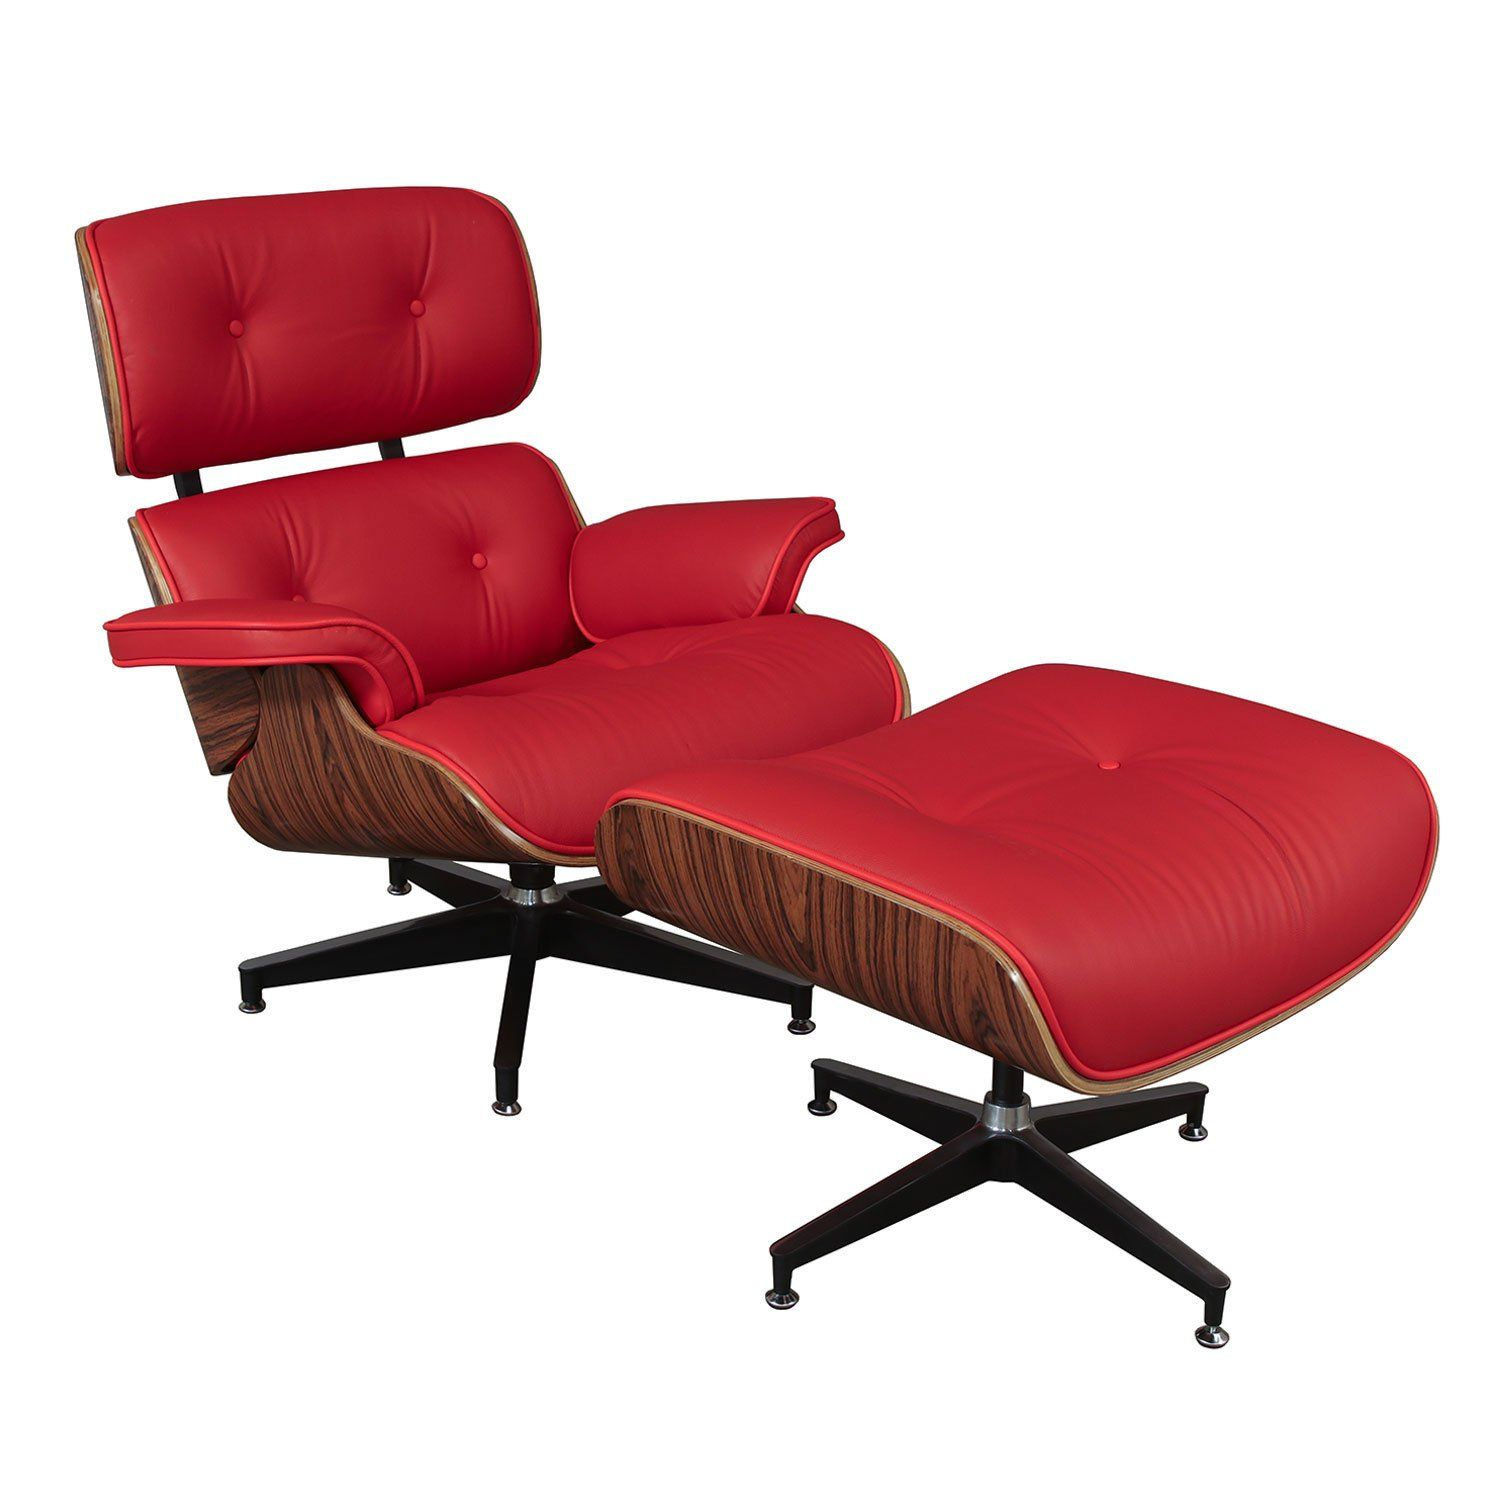 Eames Style Leather Lounge Chair & Ottoman Reproduction by